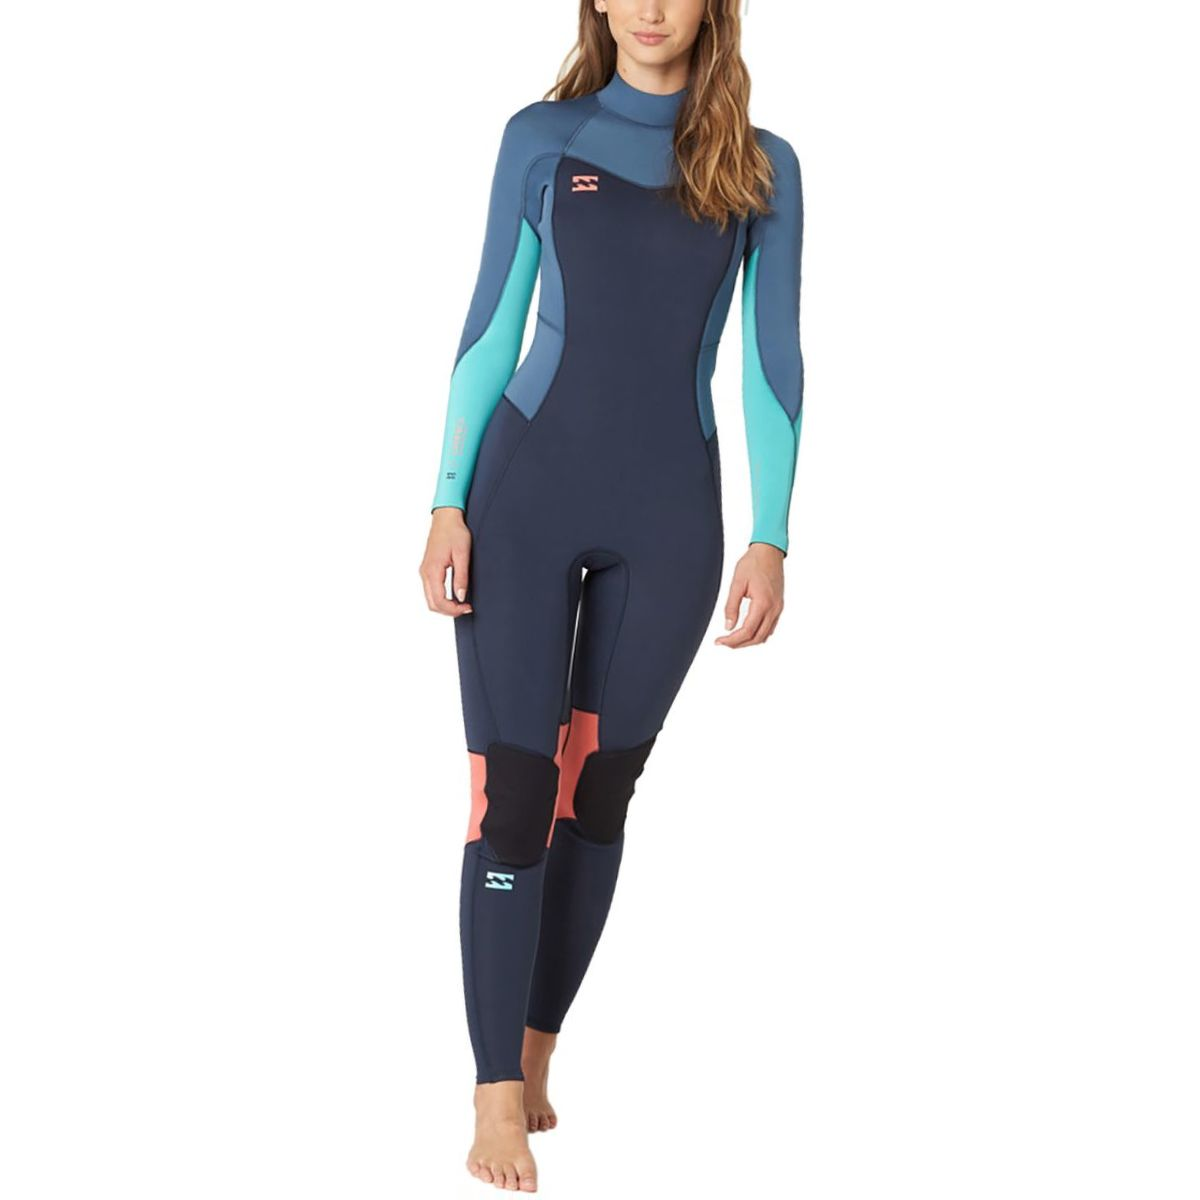 Billabong 3/2 Furnace Synergy Back-Zip Full Wetsuit - Women's